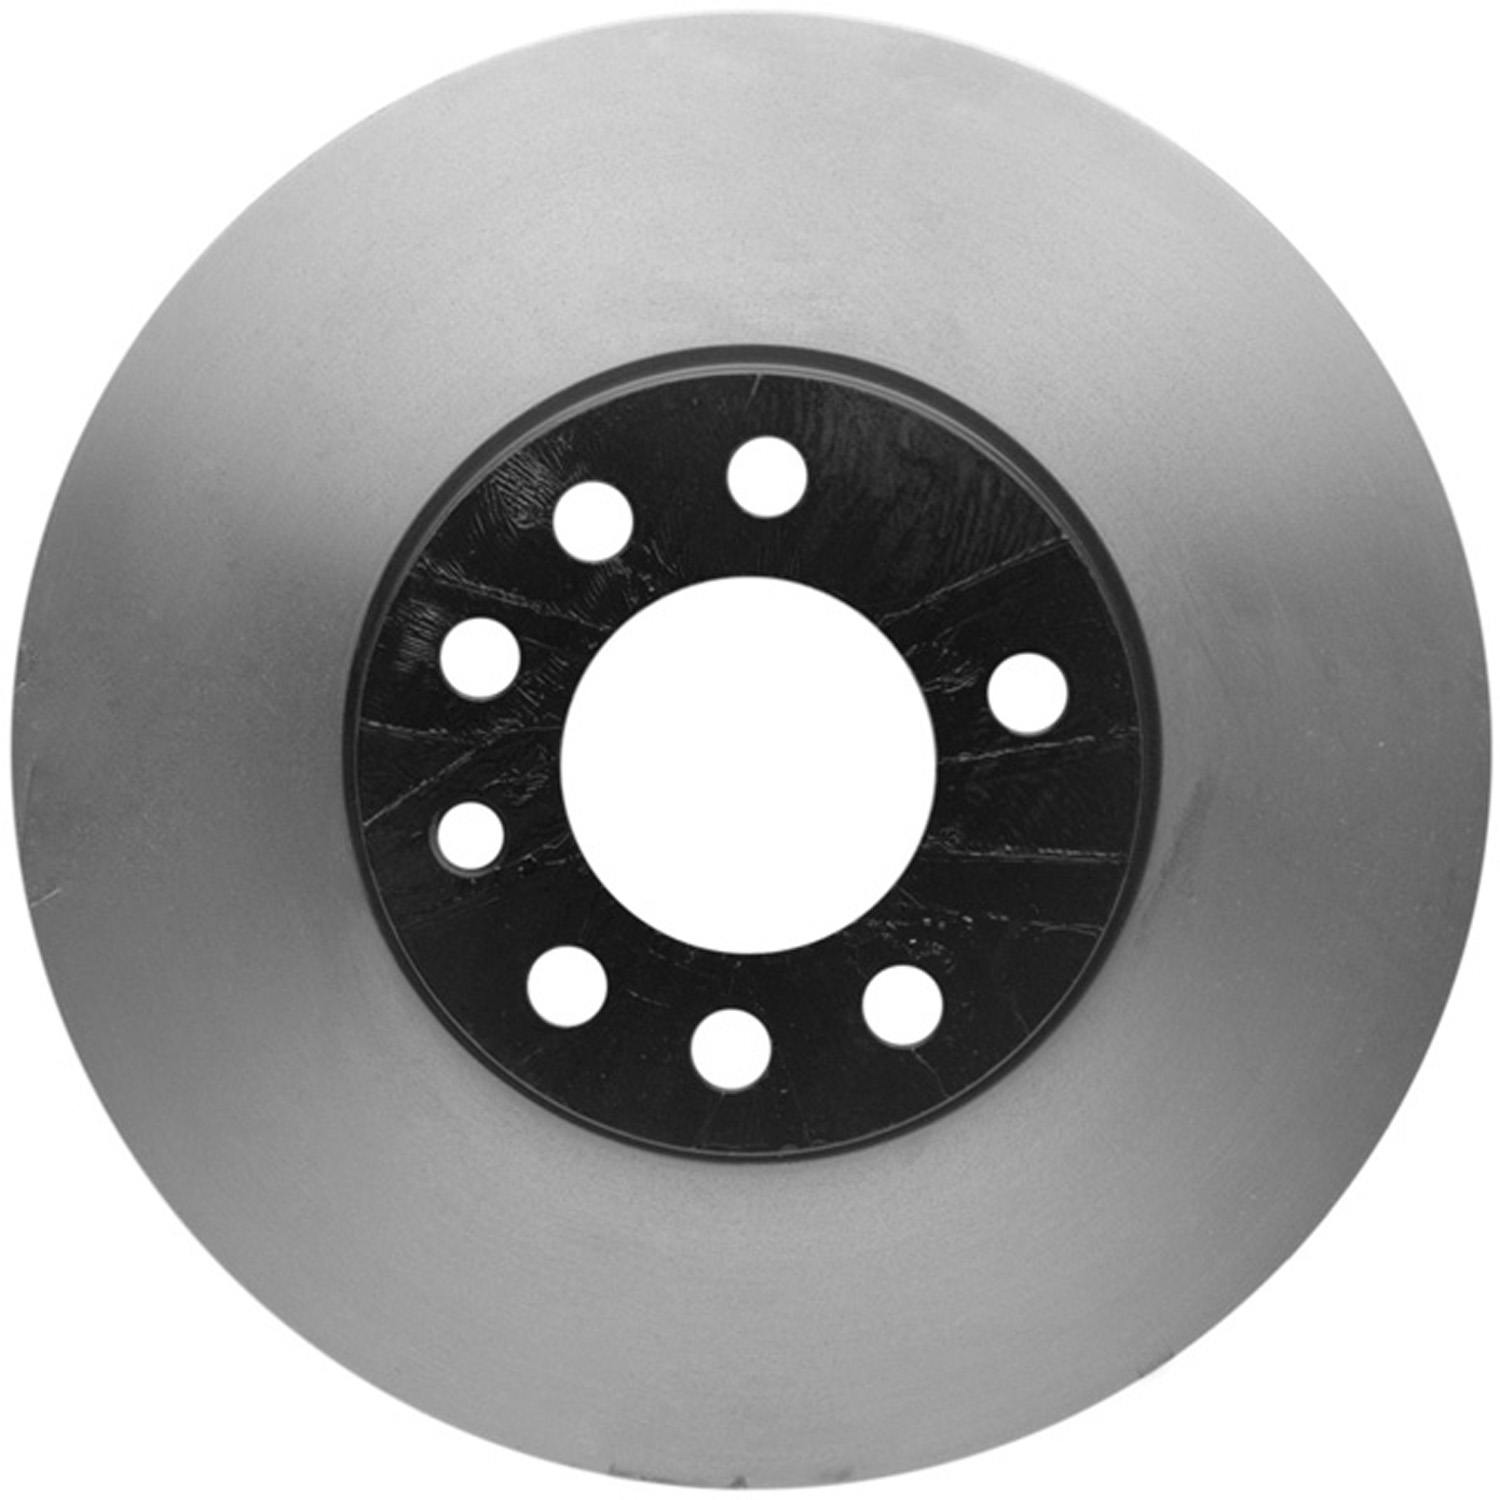 ACDELCO GOLD/PROFESSIONAL BRAKES - Black Hat - ADU 18A1092